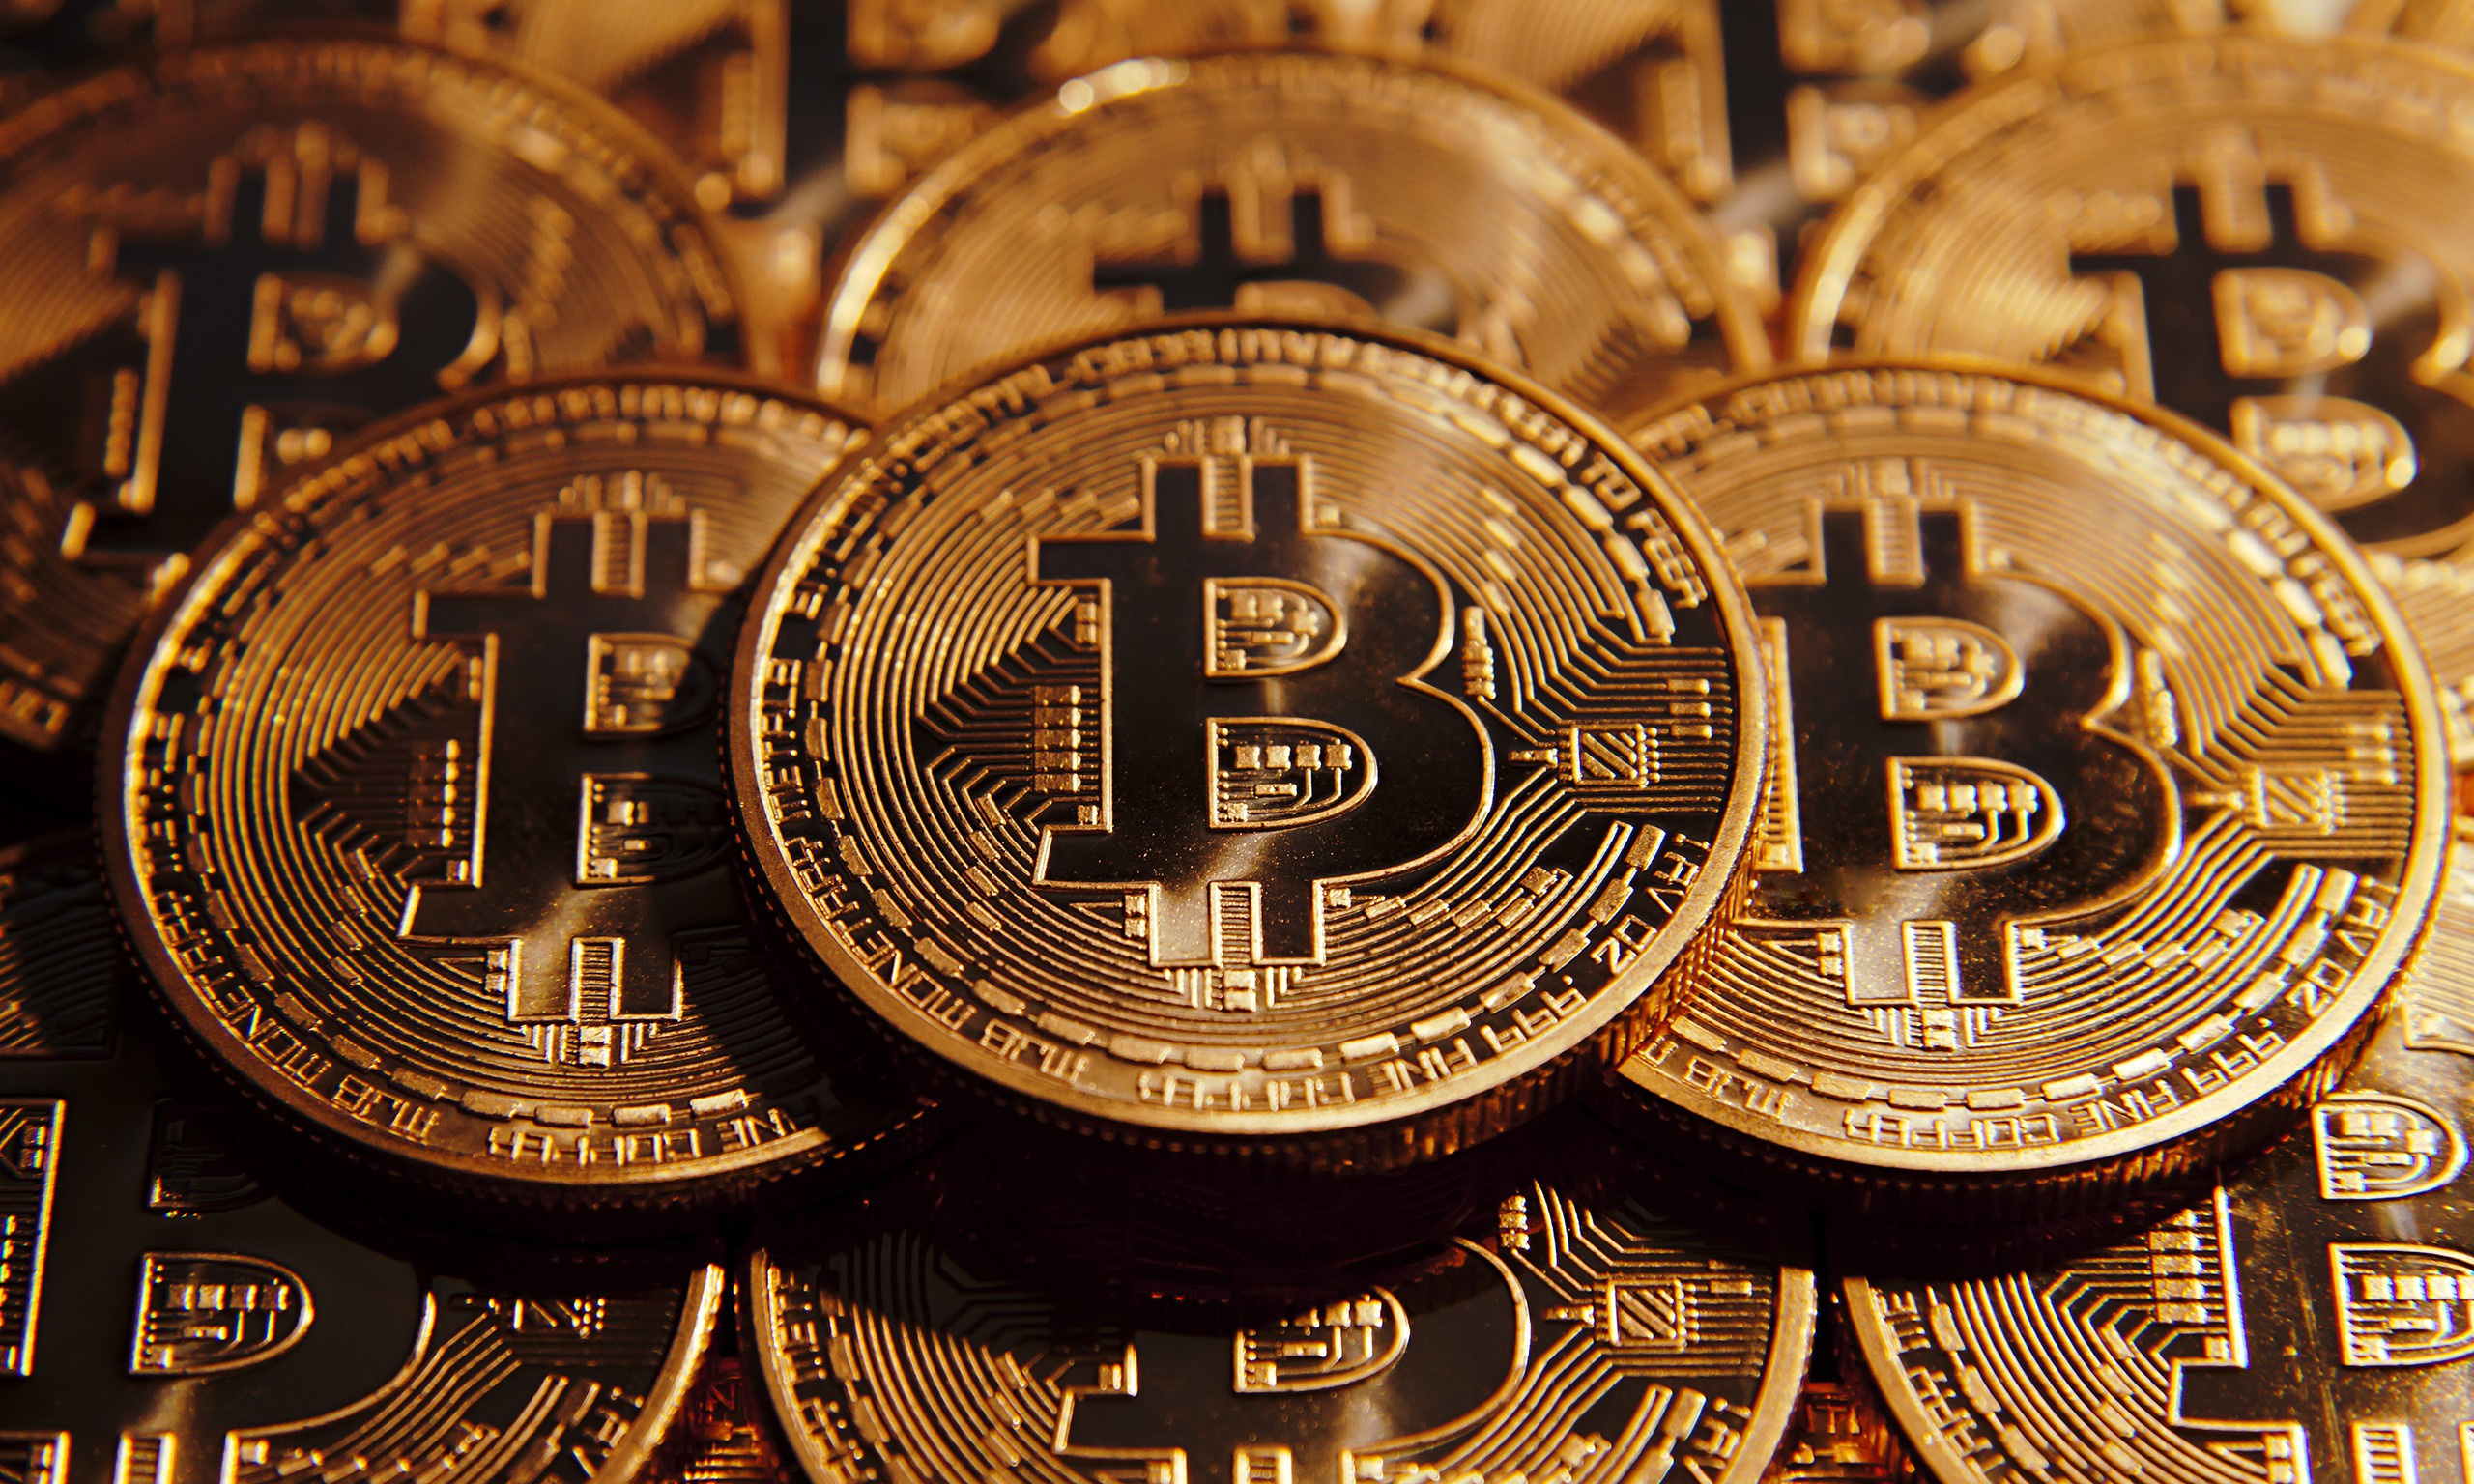 General 2560x1536 Bitcoin coin gold